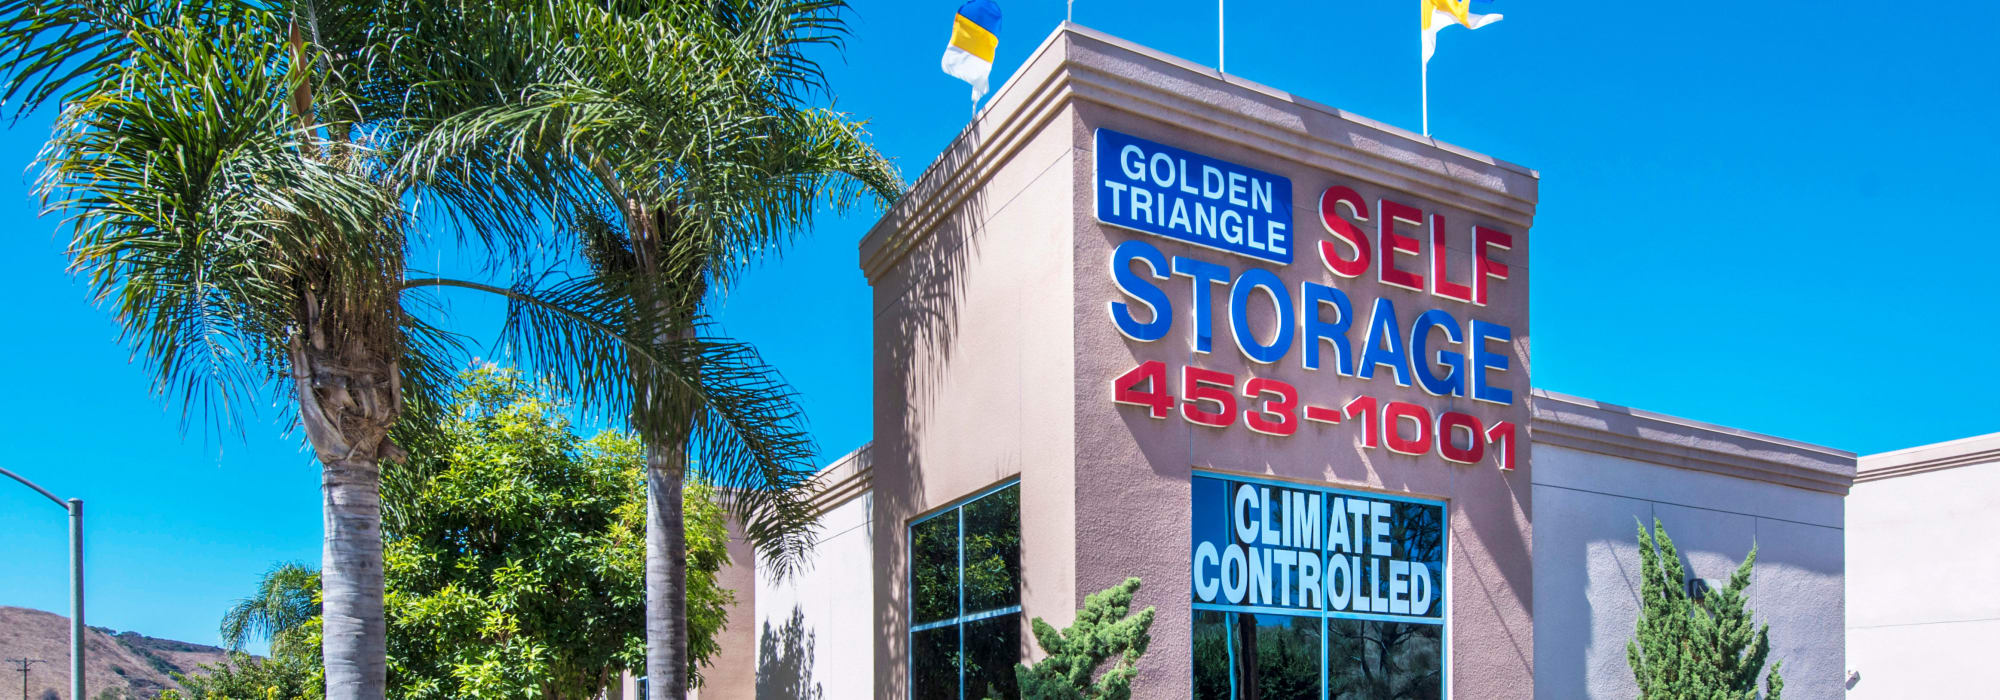 Branding on the exterior of Golden Triangle Self Storage in San Diego, California